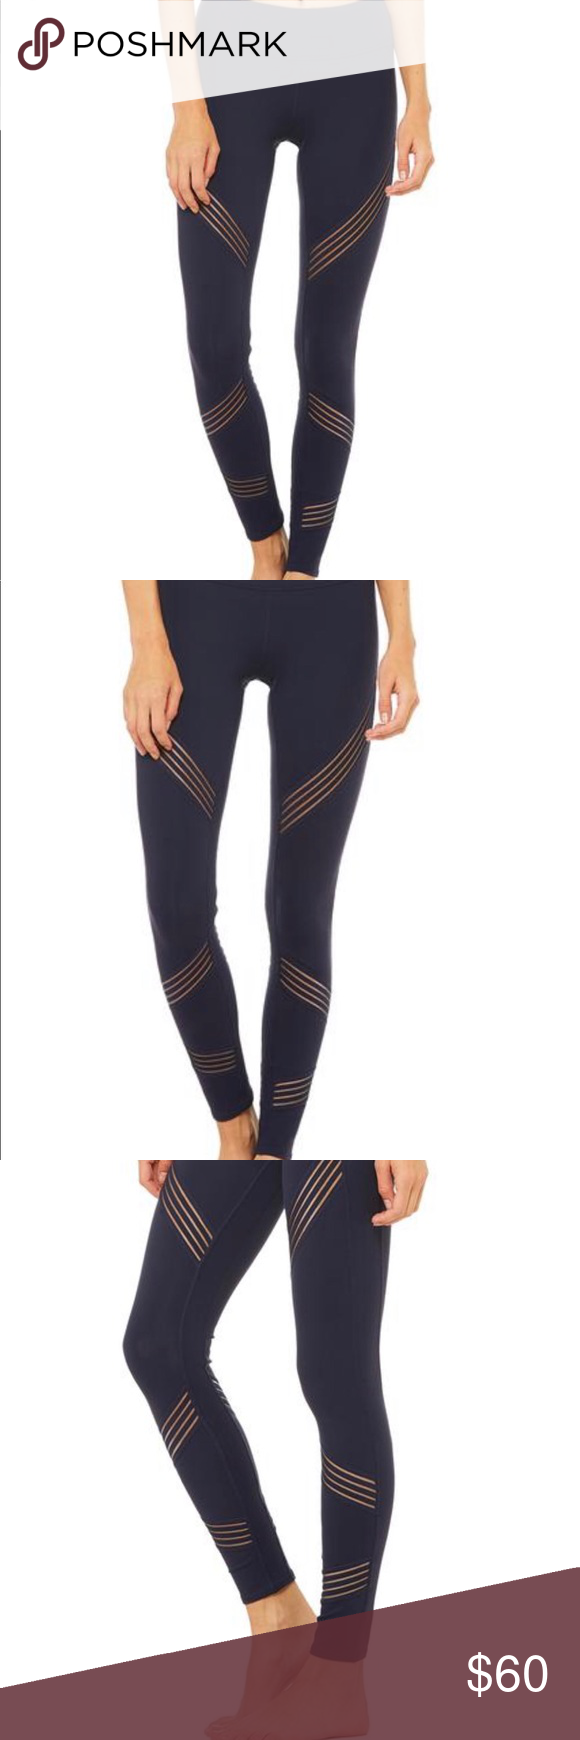 d289aae1f1fba Alo multi legging - rich navy Rich navy Alo legging! Fabulous legging for  practicing yoga